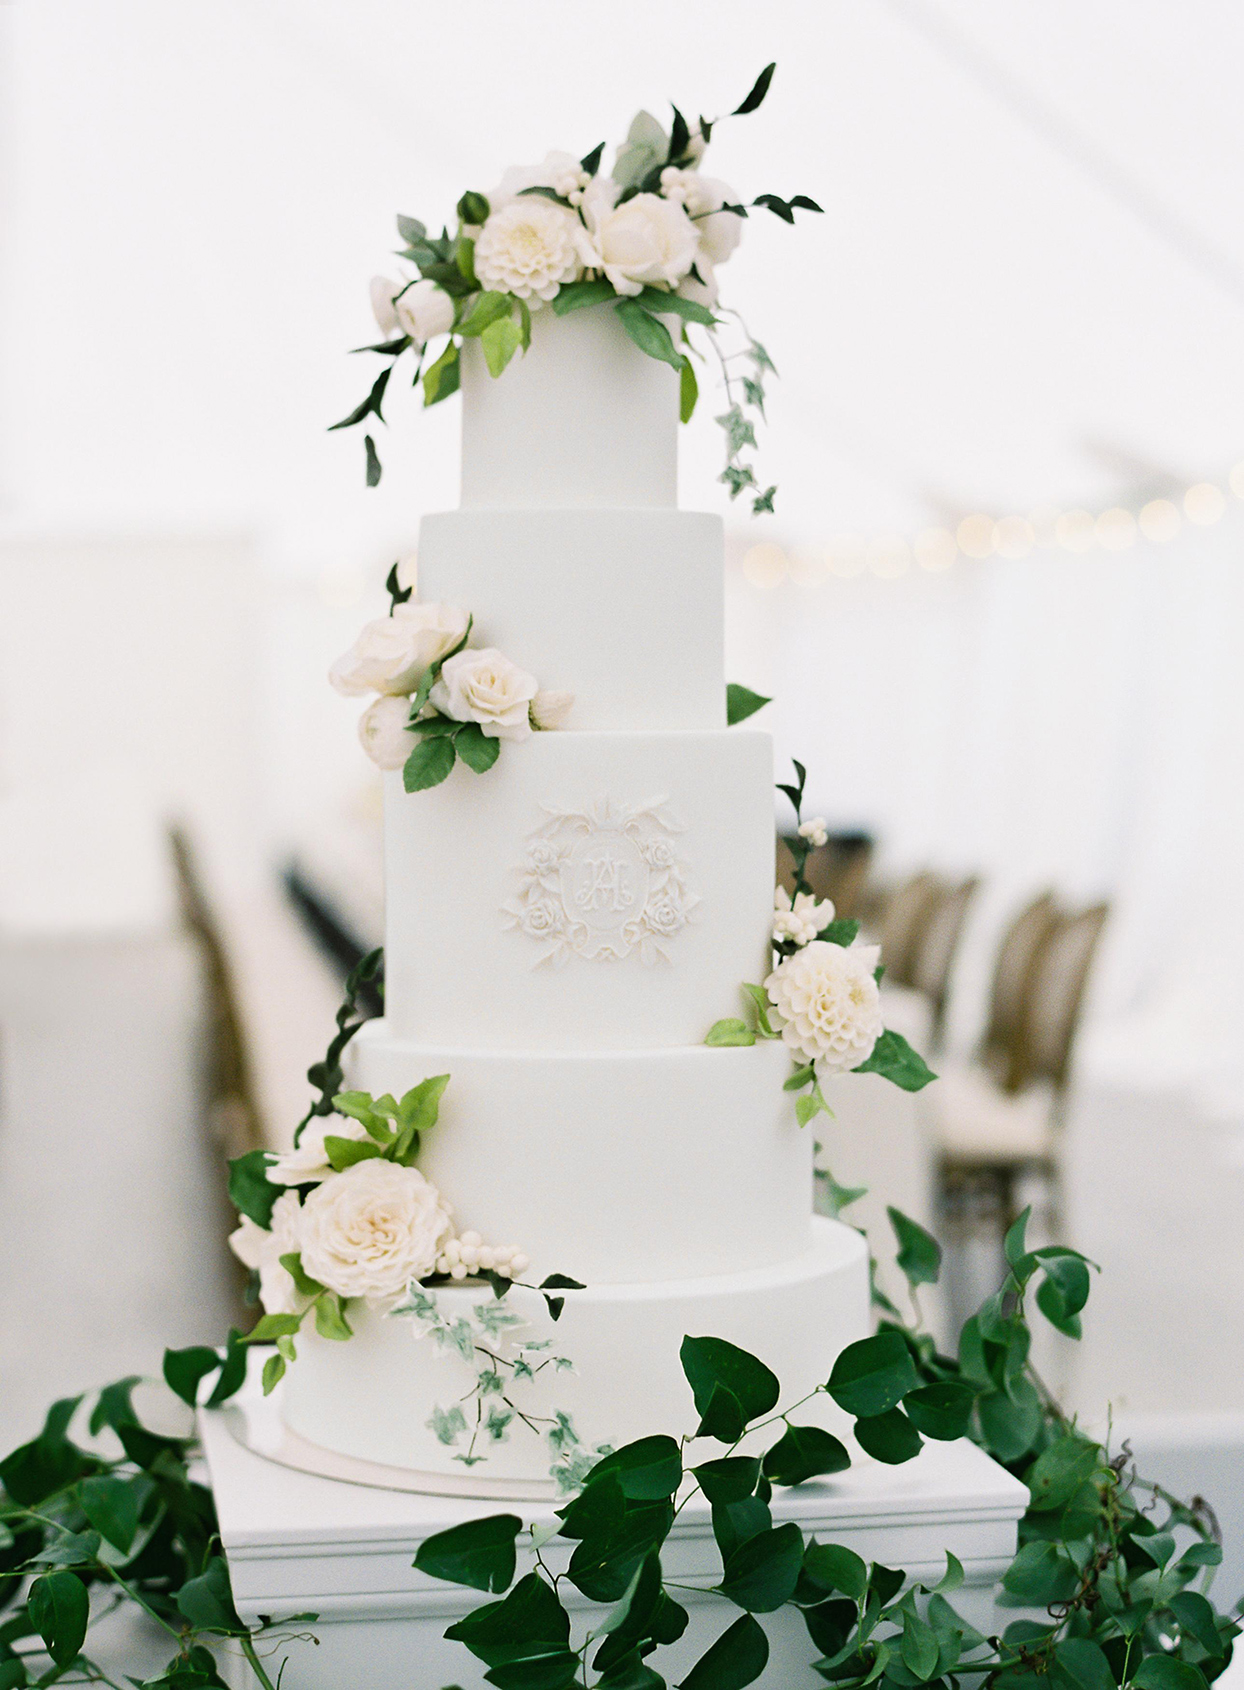 hillary alexander white wedding cake with flowers